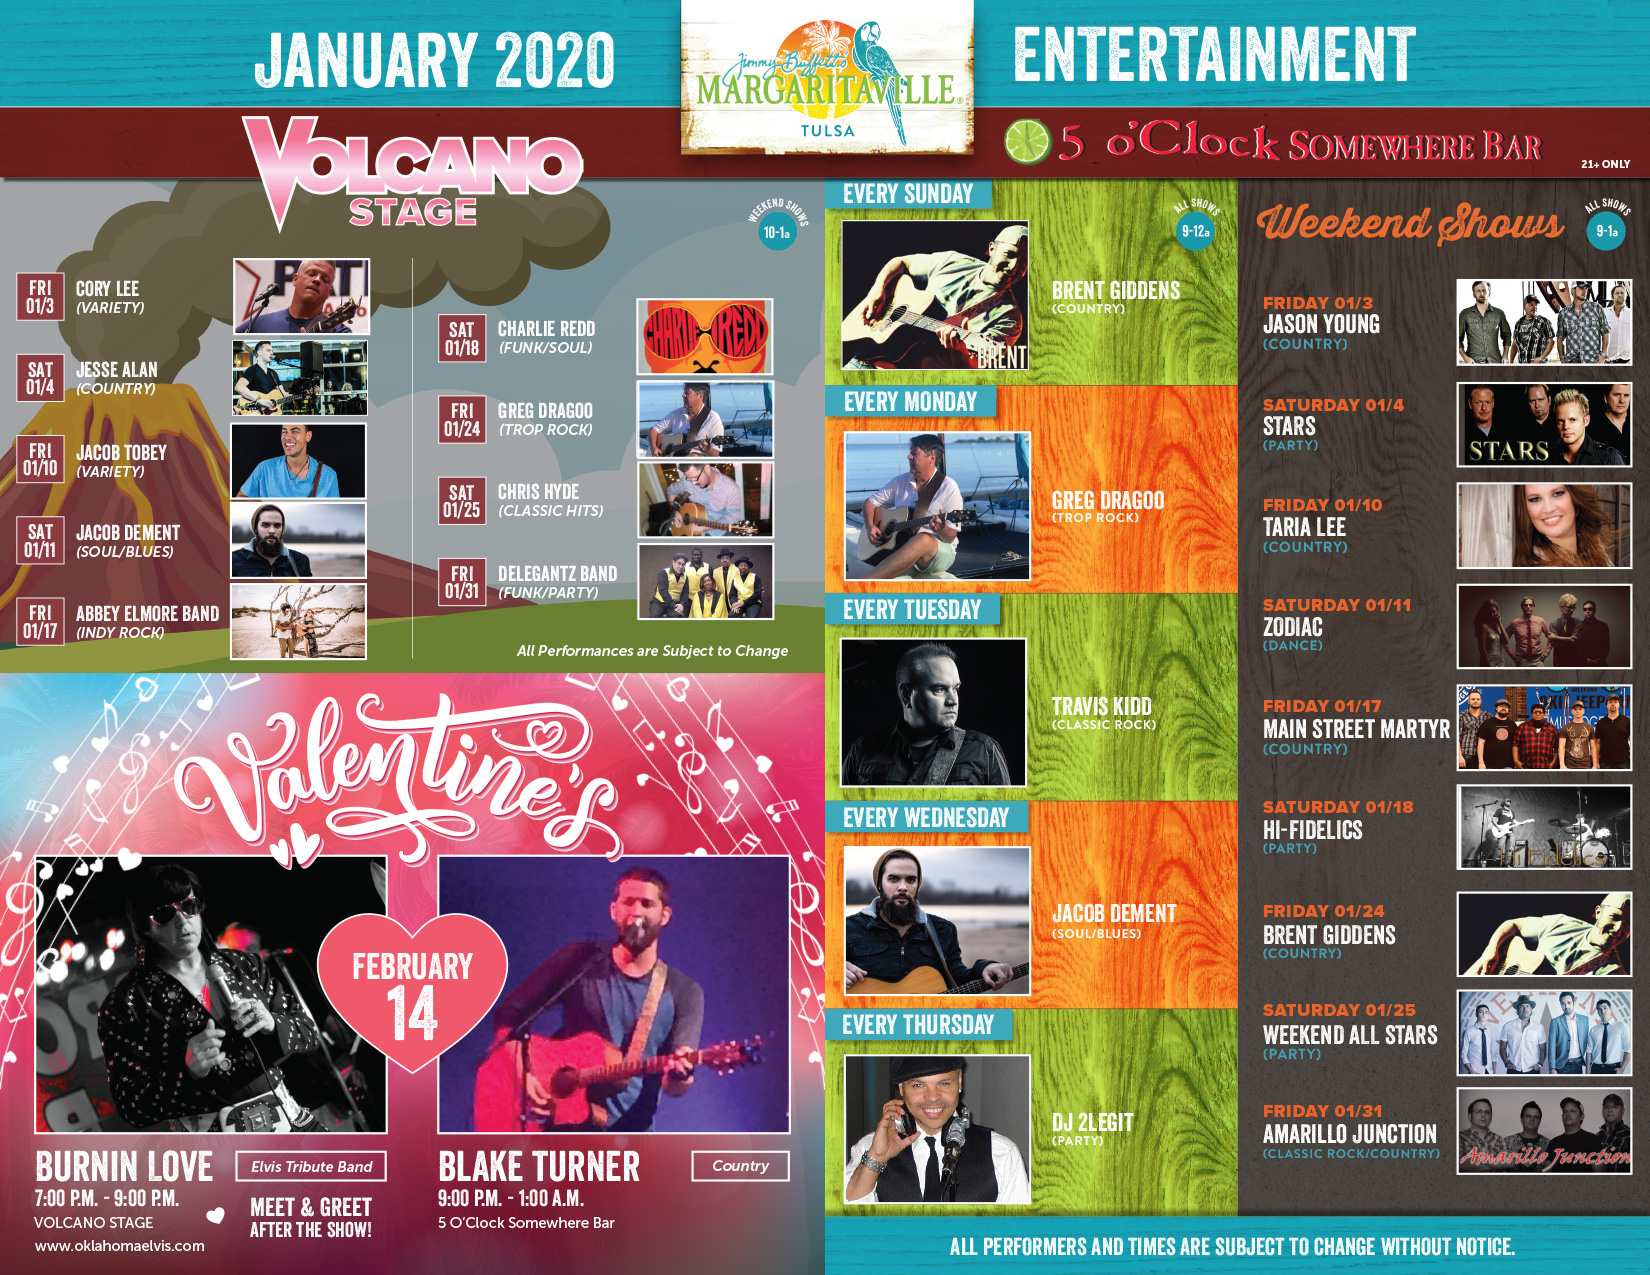 Margaritaville Tulsa December Calendar of Events. Visually impaired customers please call for assistance or read next tab